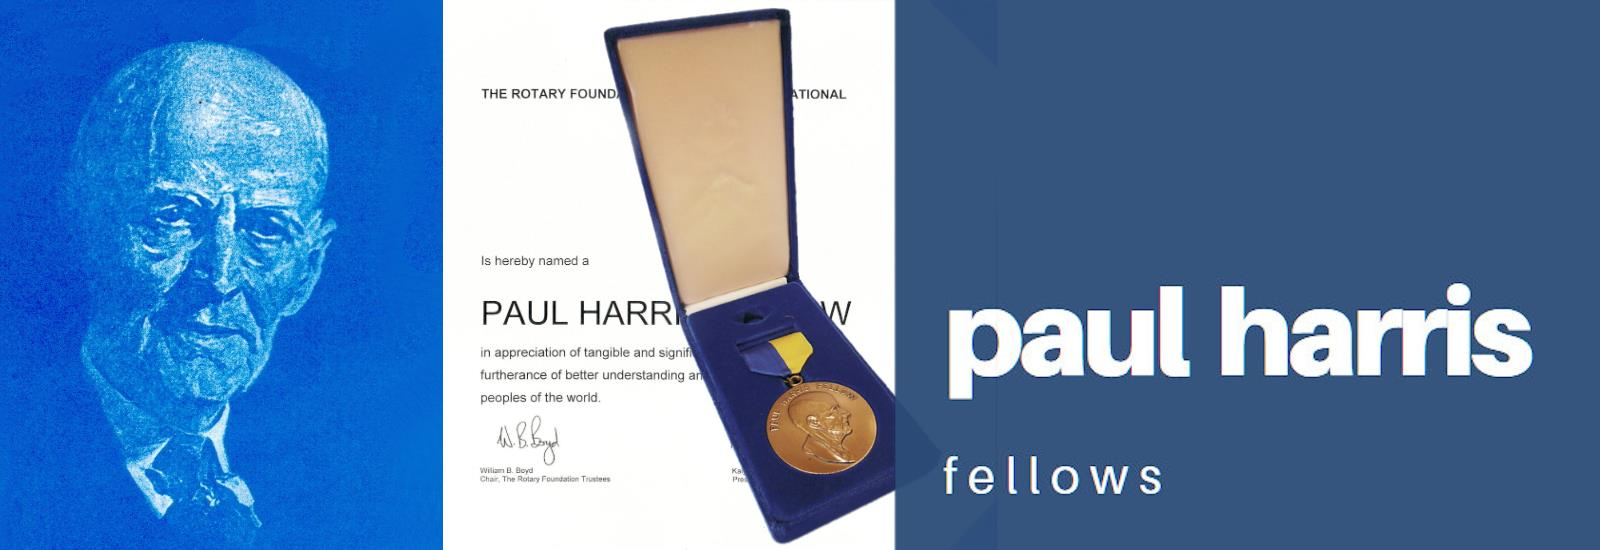 Paul Harris Fellows Banner